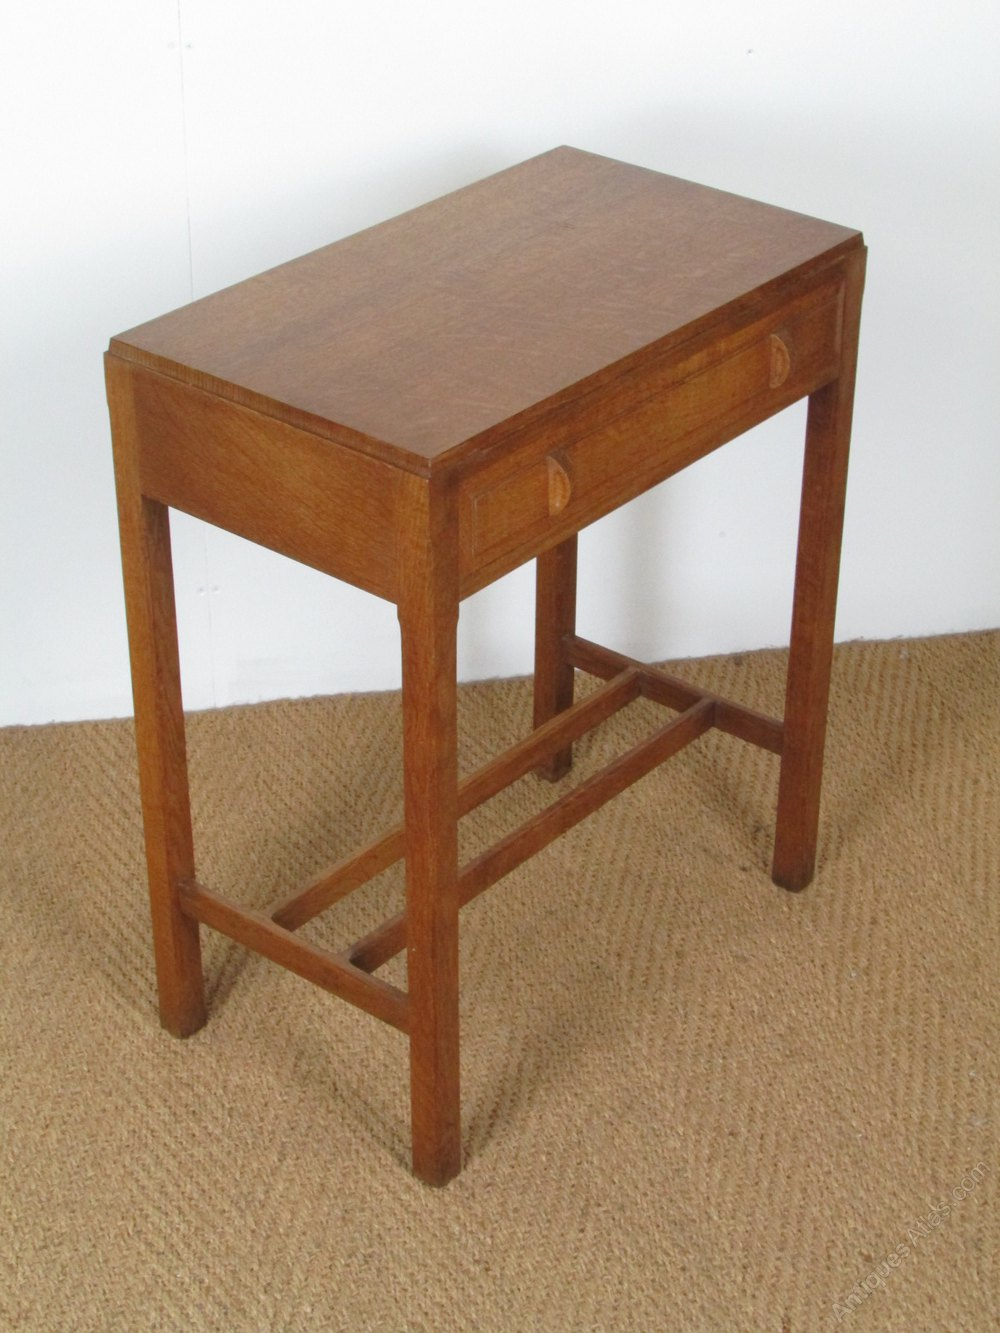 Antiques atlas arts crafts cotswold school oak side table for Arts and crafts side table